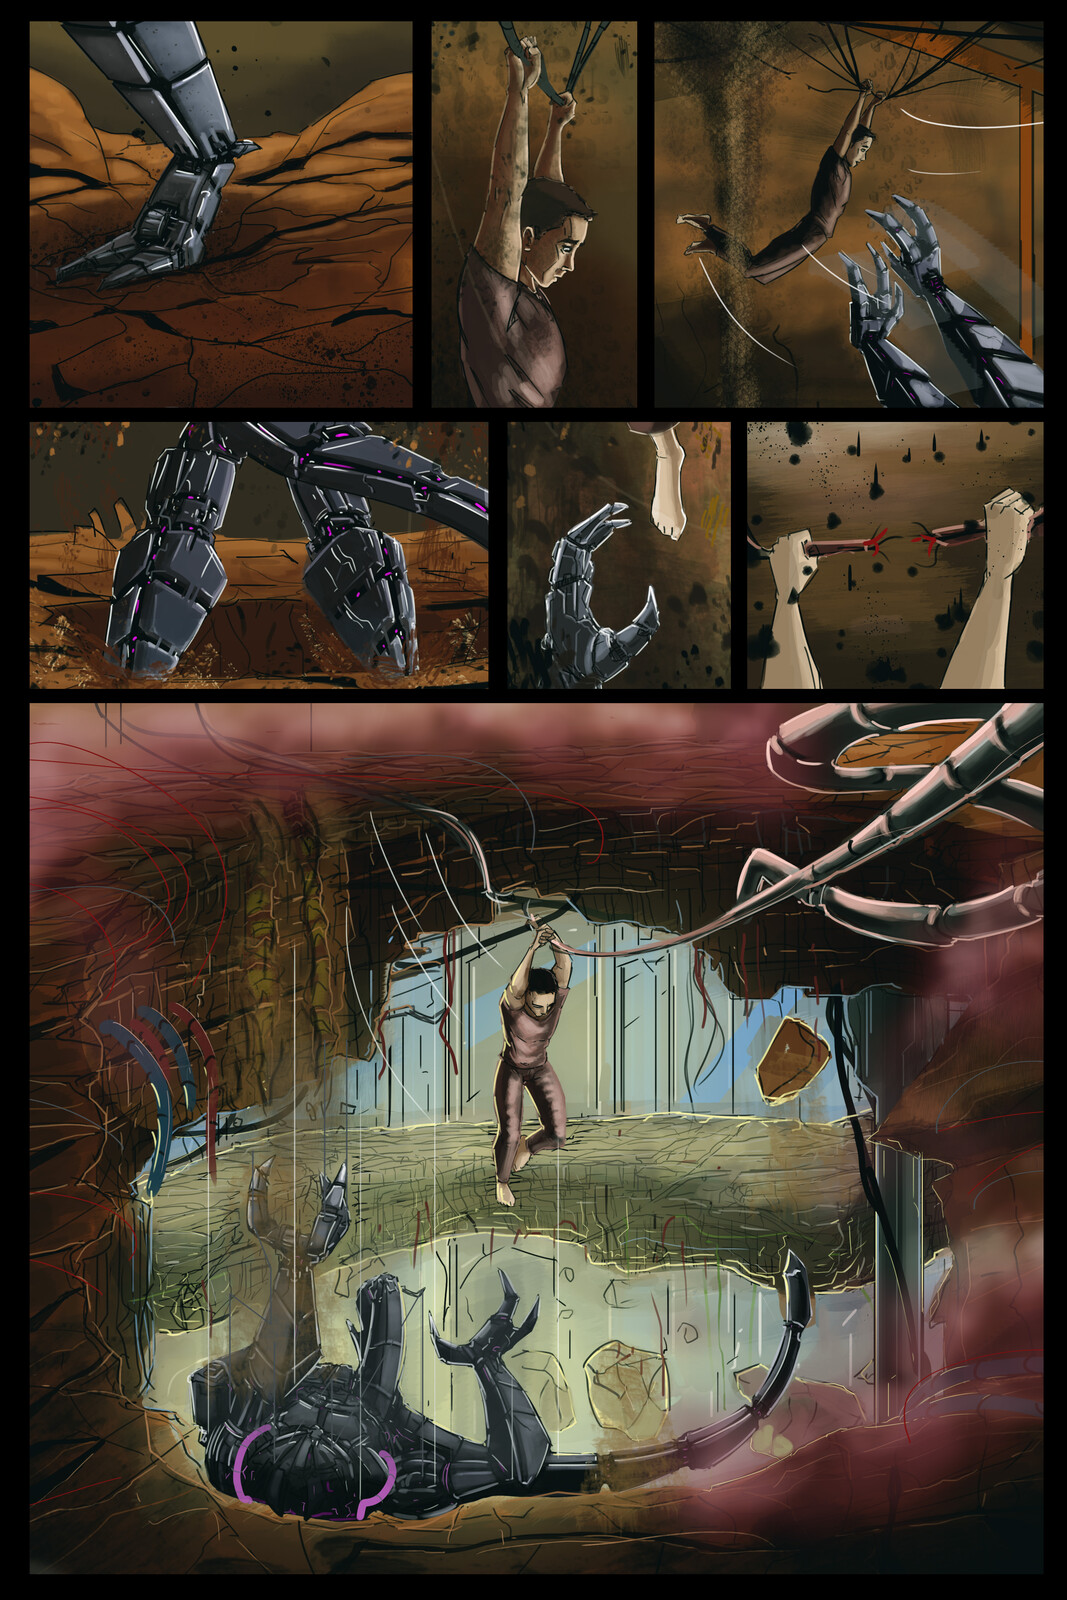 sci fi comic thing i am working on i dunno...